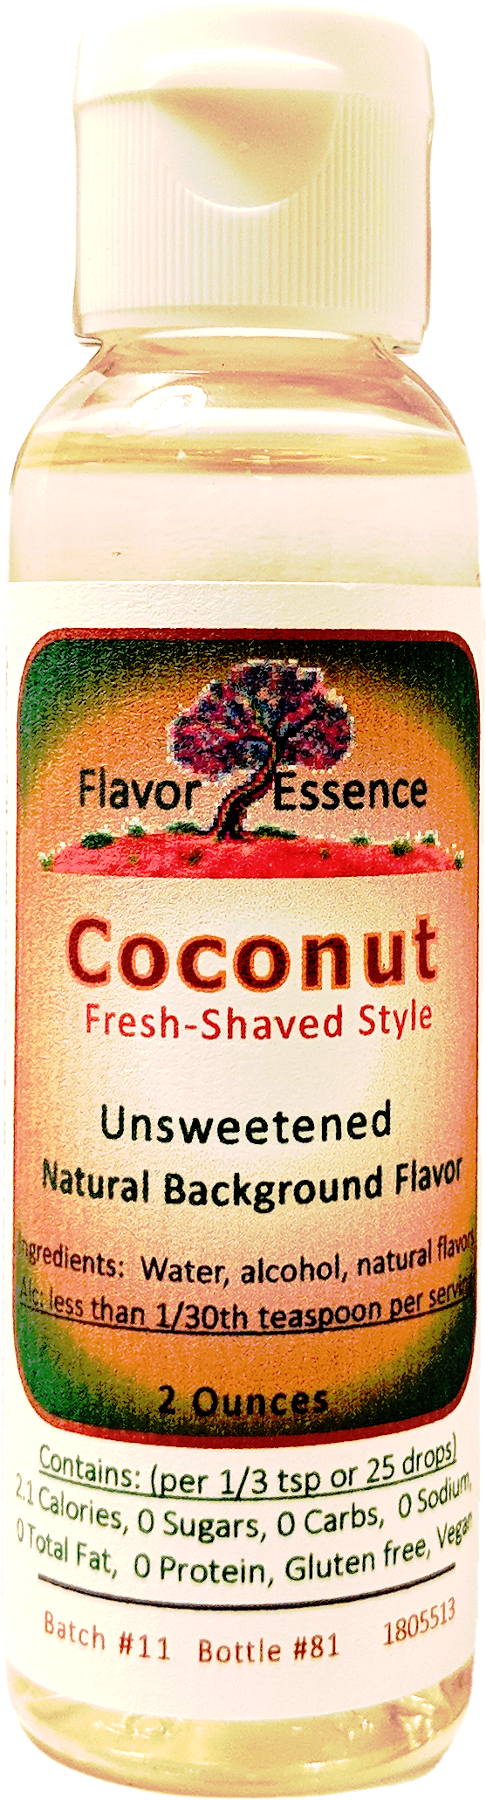 COCONUT (Fresh Shaved Style) Unsweetened Natural Flavoring COC-